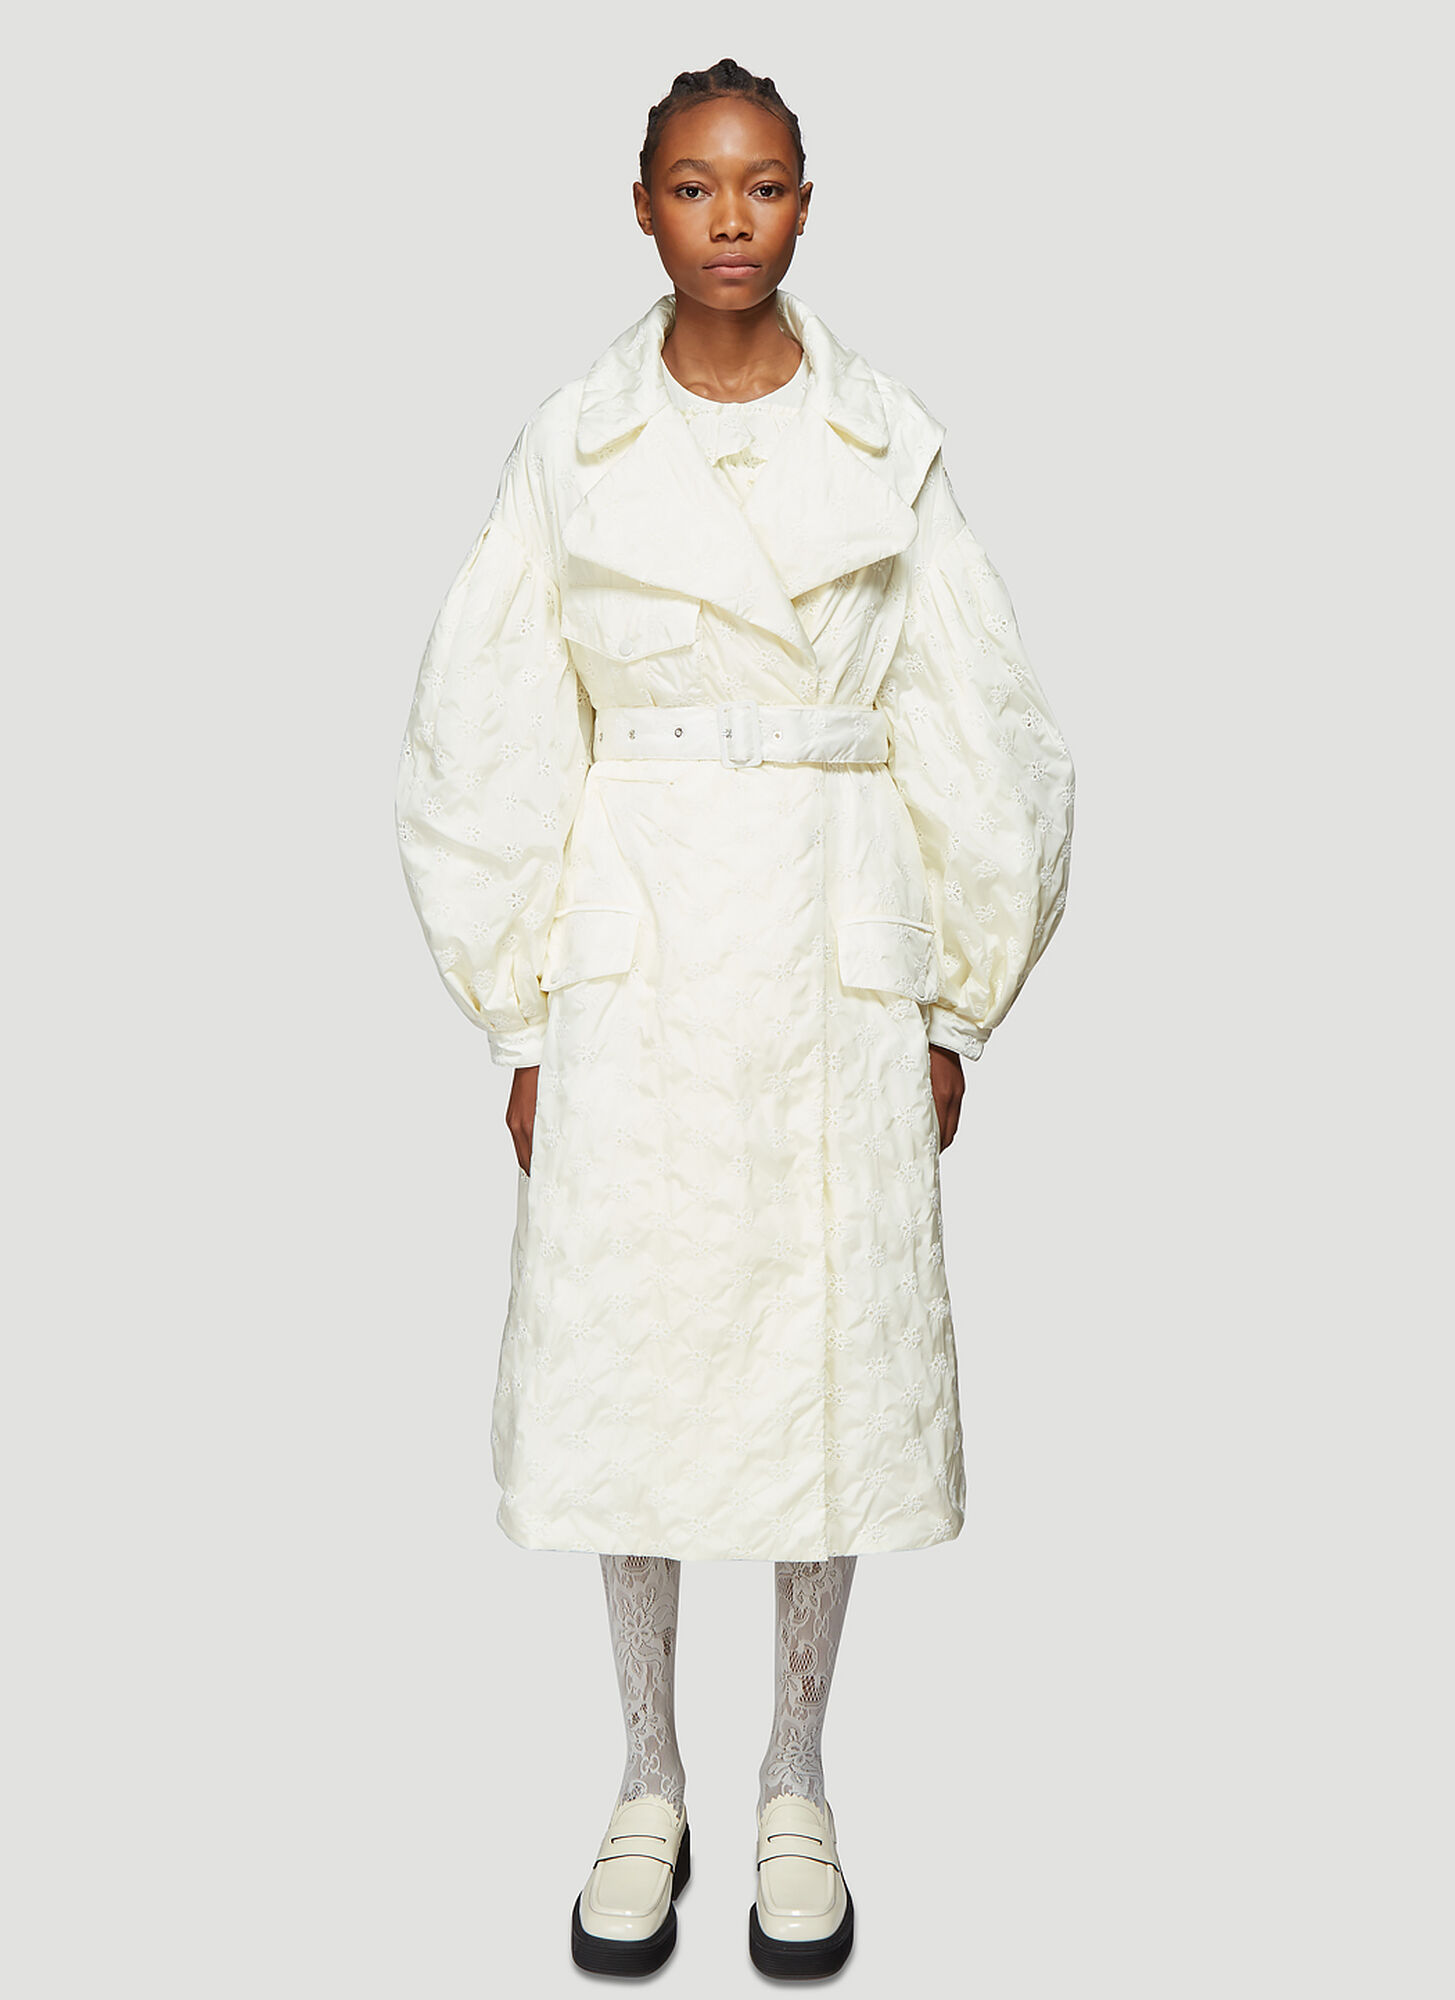 4 Moncler Simone Rocha Dinah Broderie Anglaise Coat in White